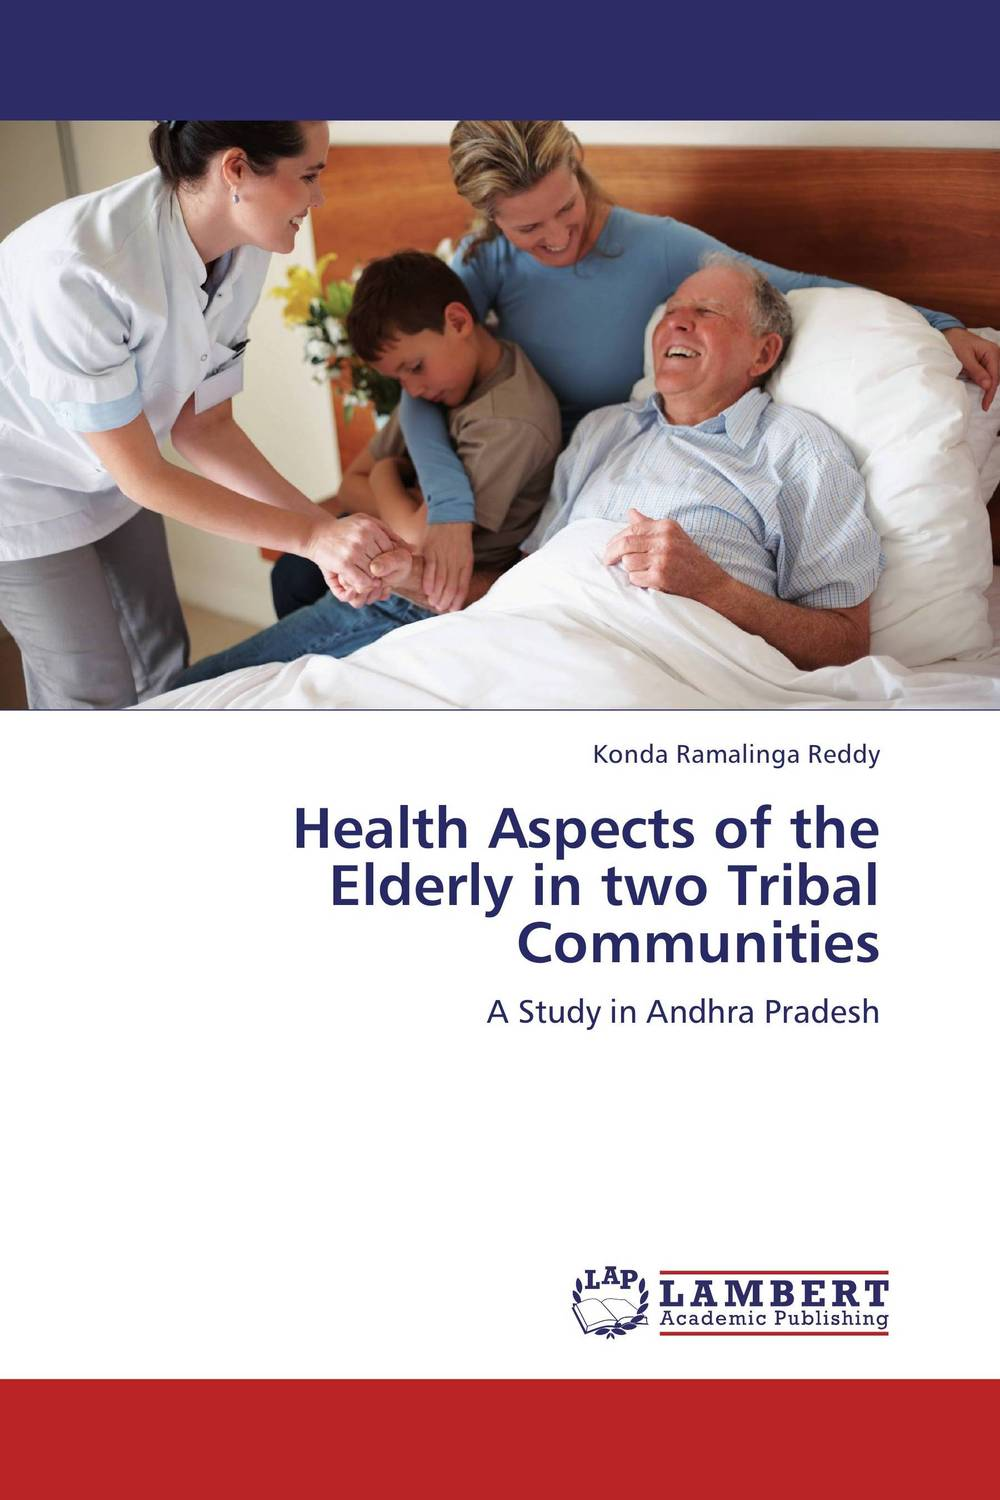 Health Aspects of the Elderly in two Tribal Communities prostate health devices is prostate removal prostatitis mainly for the prostate health and prostatitis health capsule